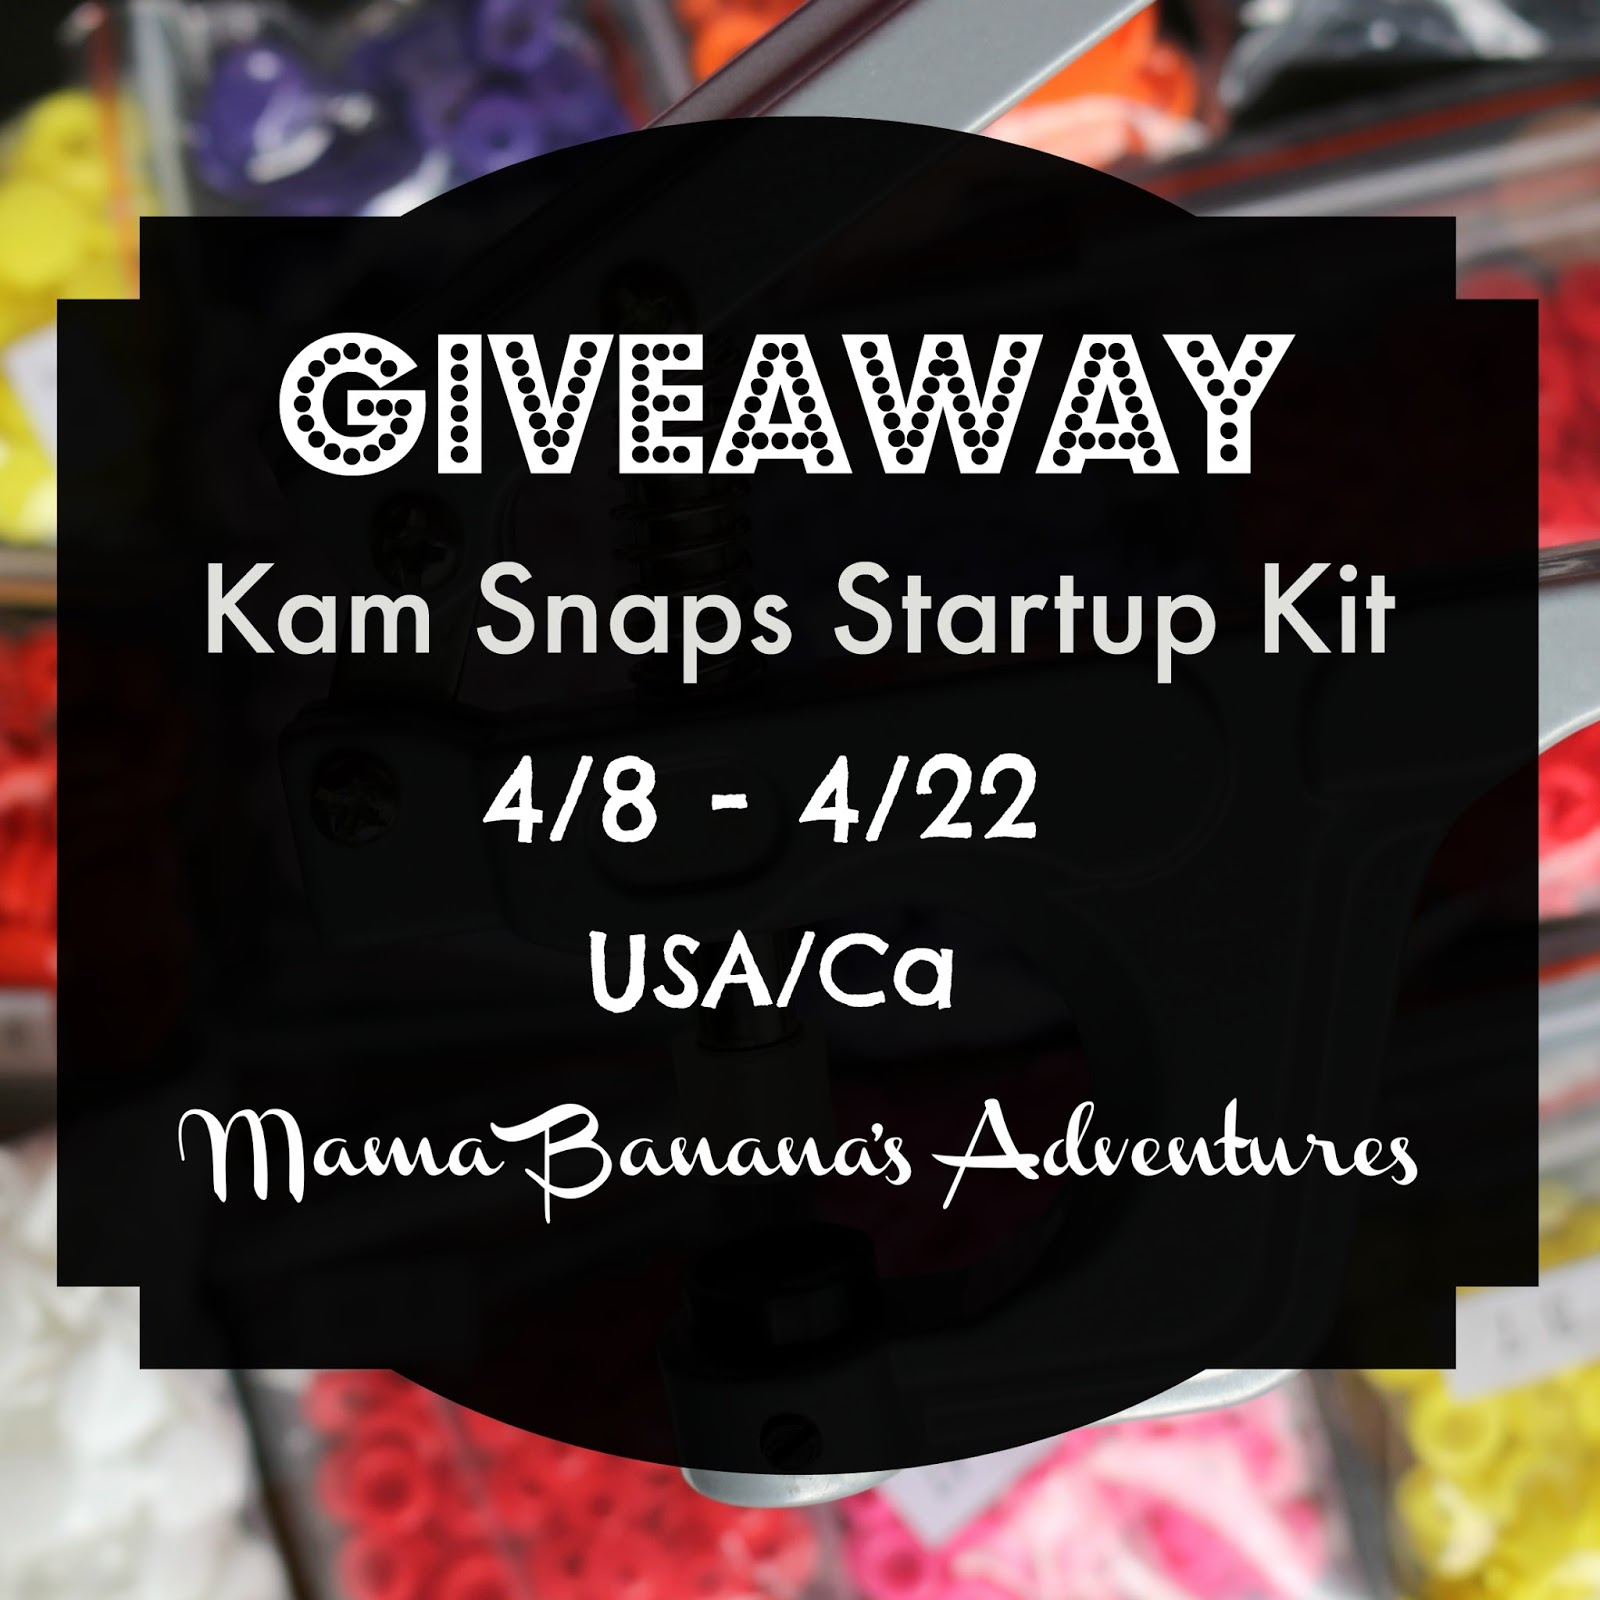 Kam Snaps K2 Pliers and Accessories Giveaway USA/Ca ends 4